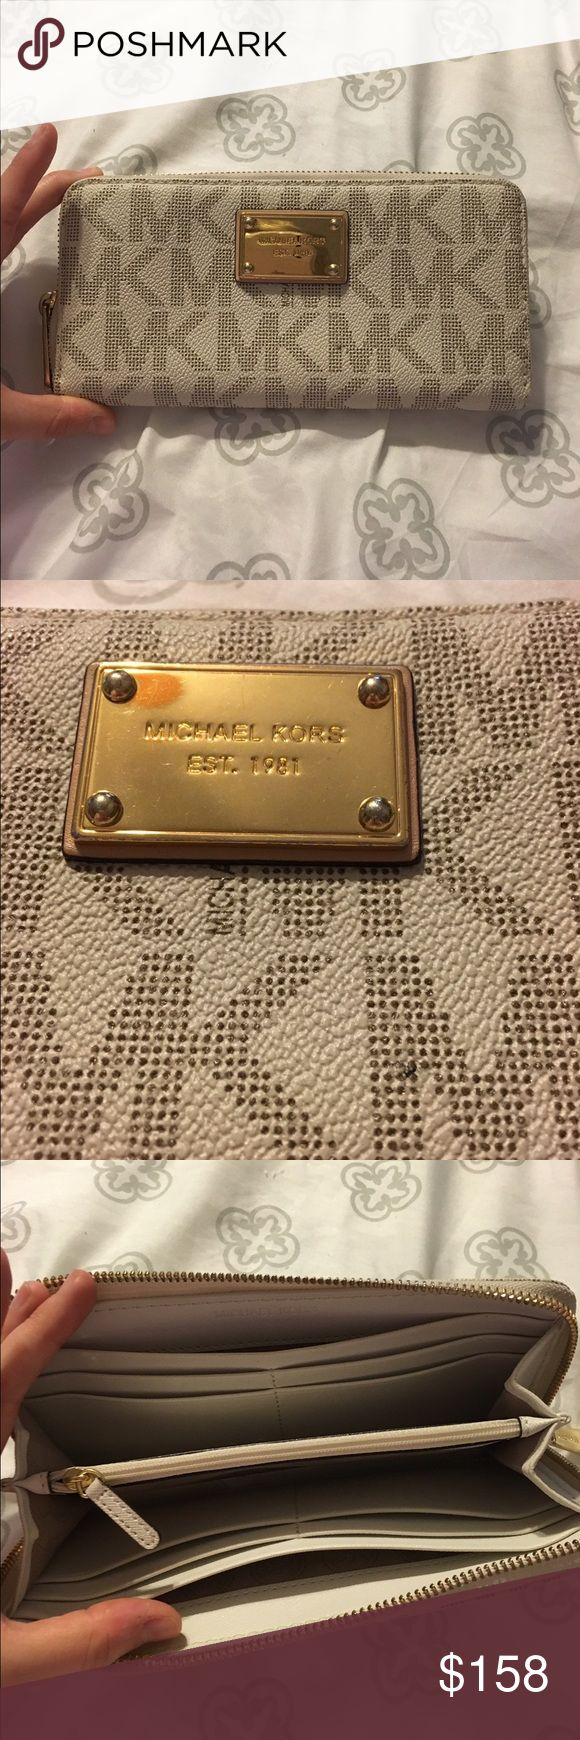 *LOWEST* MK Vanilla Large Wallet Michael Kors Vanilla Authentic Large Wallet. Great condition. Only flaw is there's minor scratches on the hardware, but barely noticeable. Tons of slots for cards. So cute. Michael Kors Bags Wallets